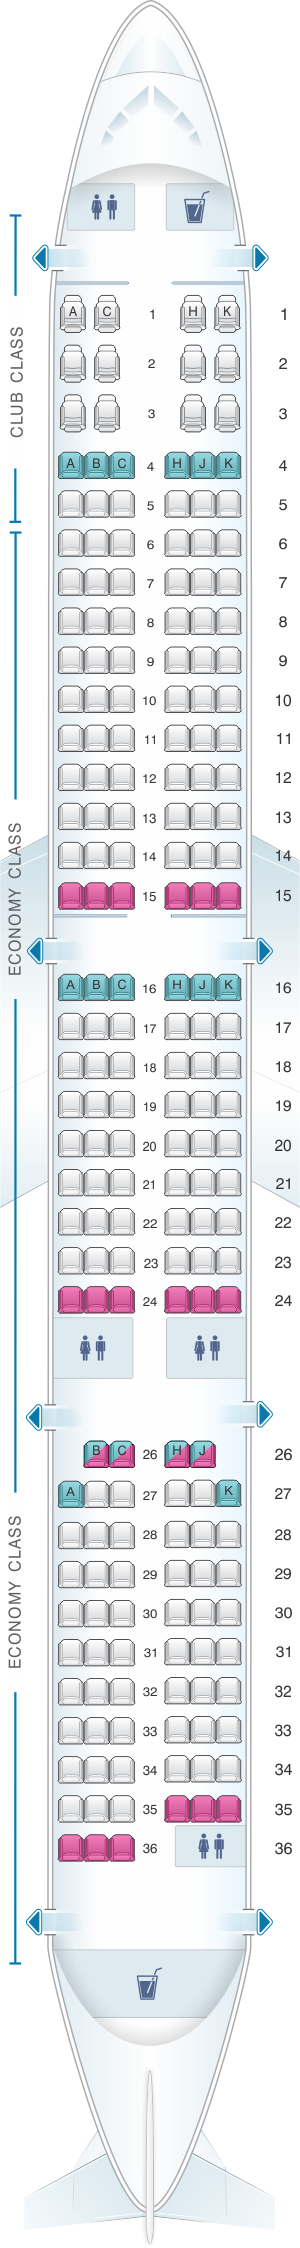 Seat map for Air Transat Airbus A321 Neo LR